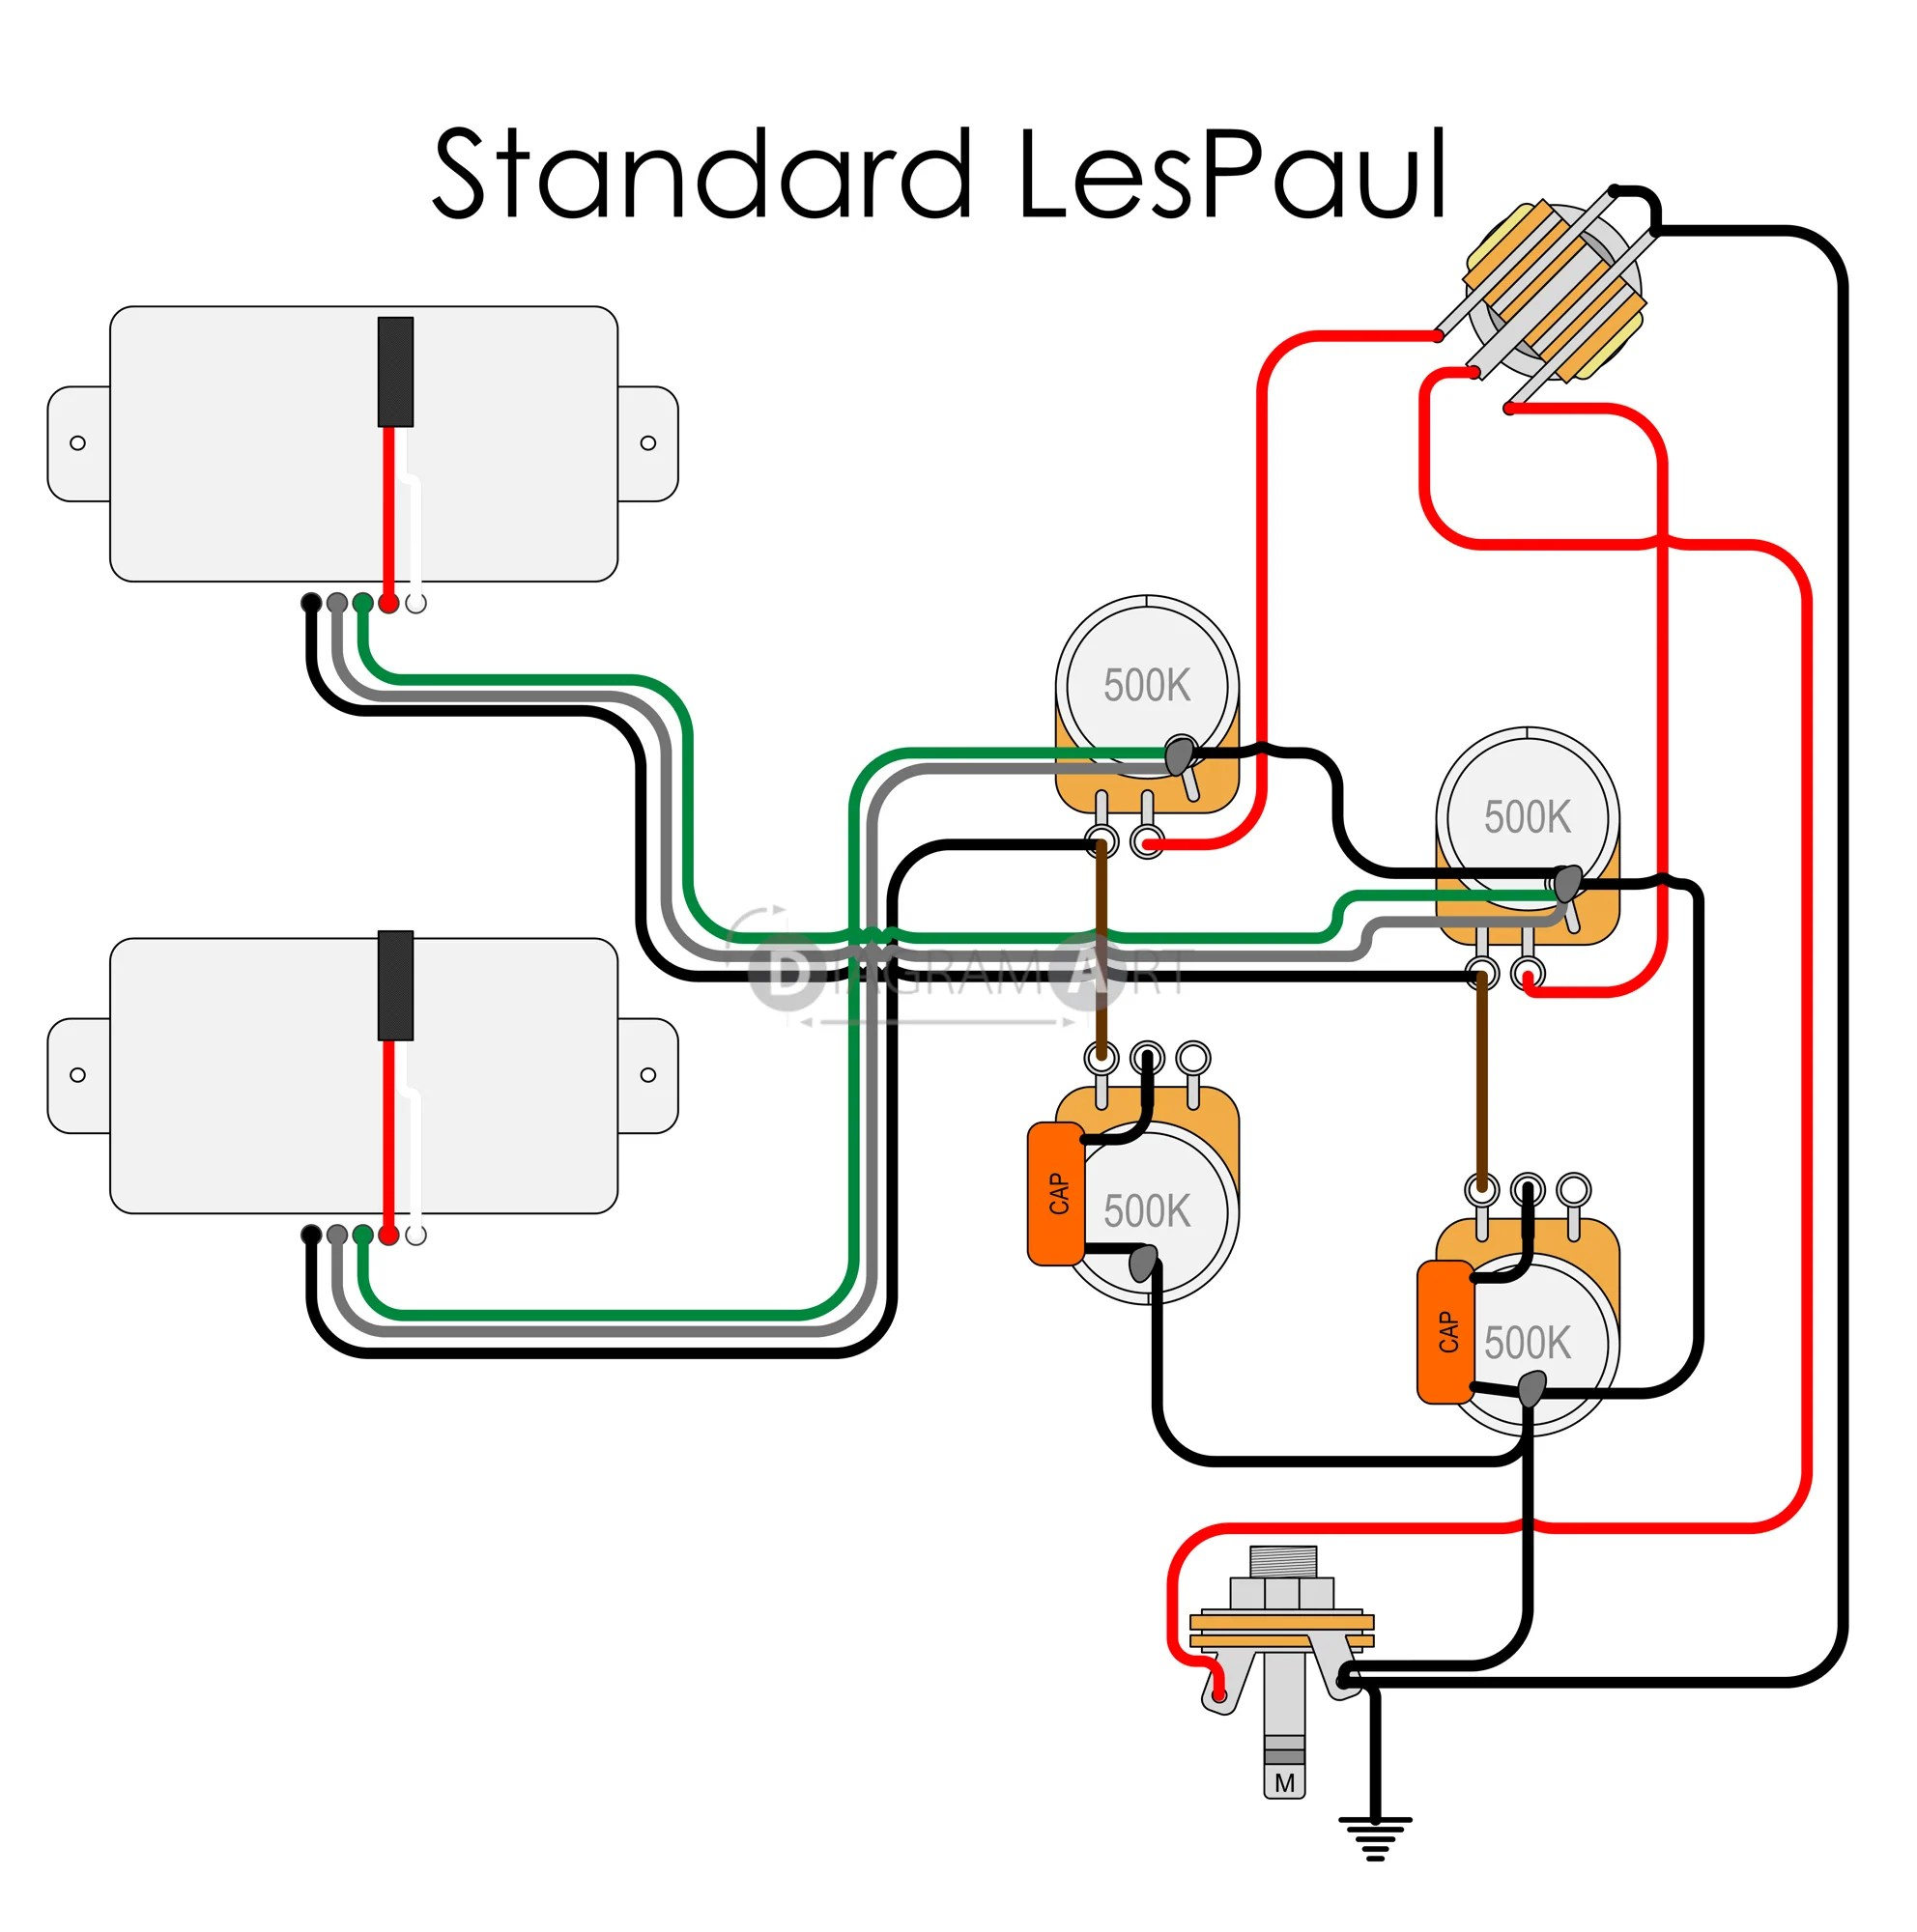 electric guitar wiring standard lespaul electric circuit diagramart vintage les paul wiring diagram electric [ 1984 x 2000 Pixel ]